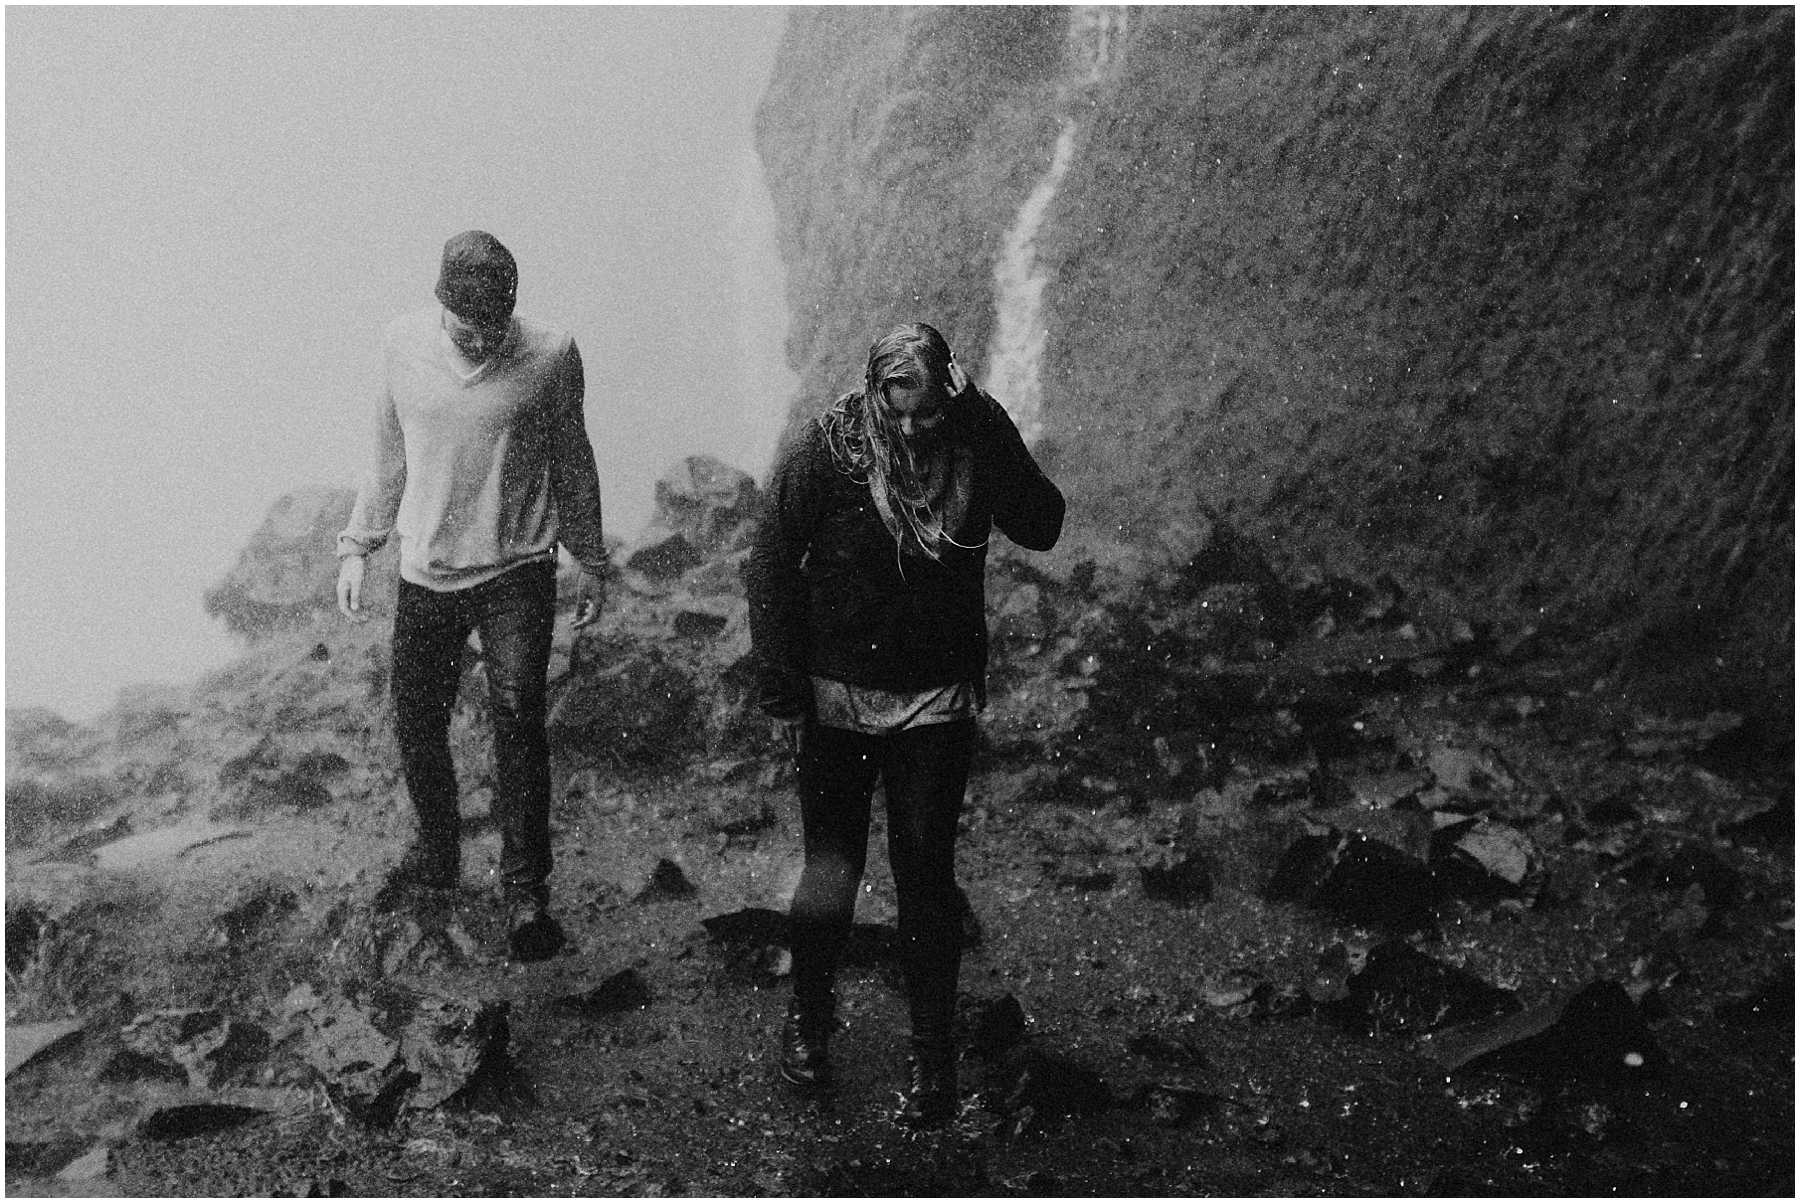 An adventurous couple soaked in a waterfall in Iceland